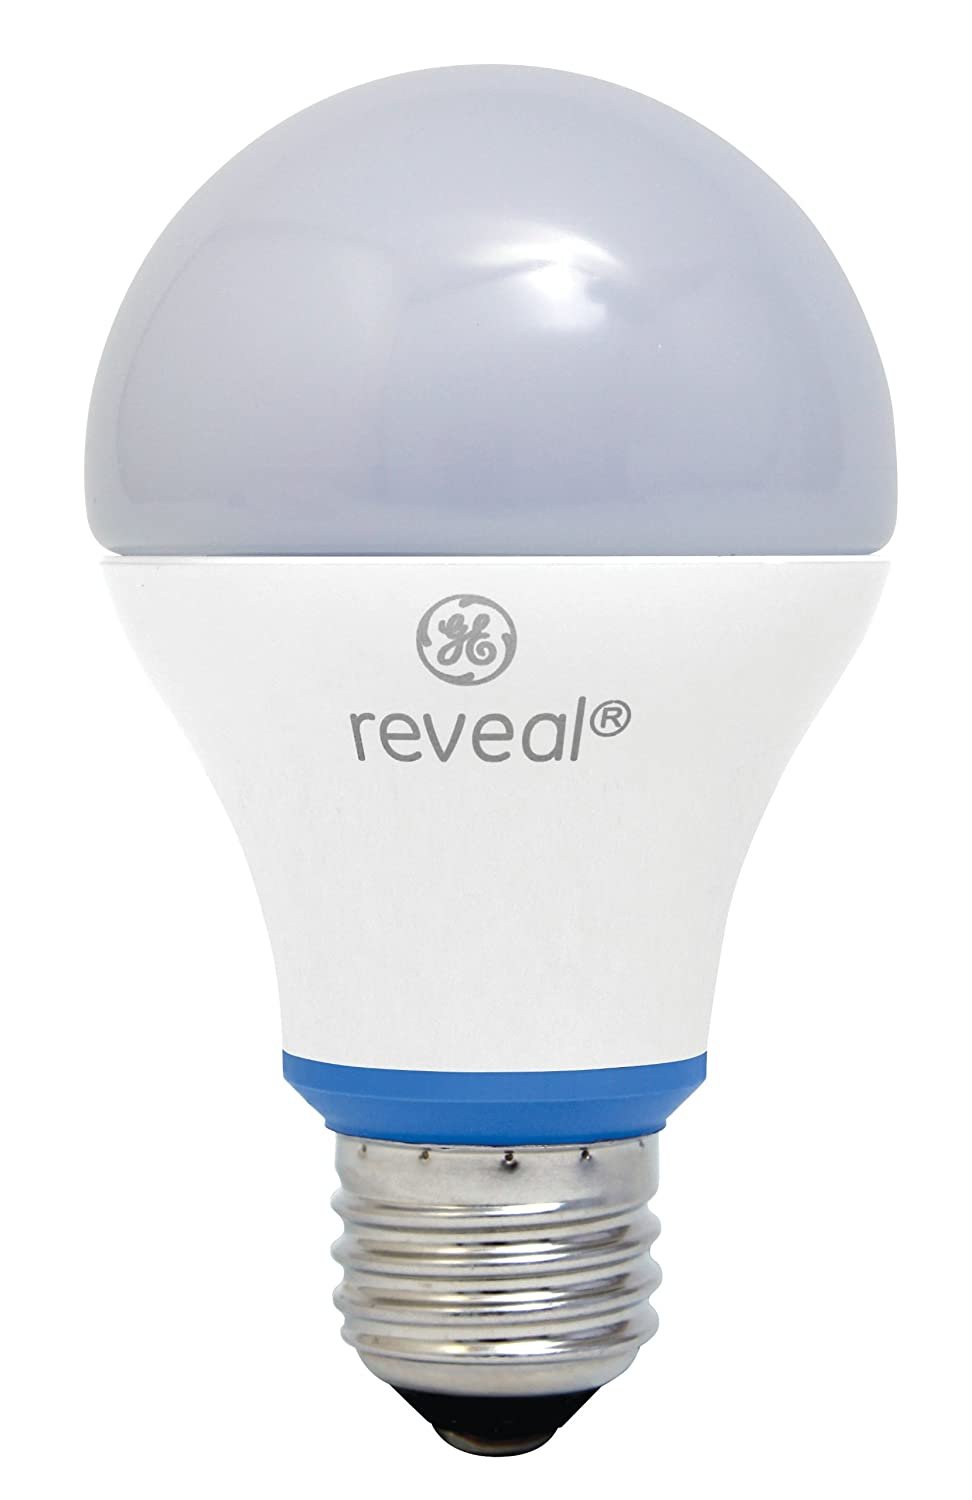 GE Lighting 69204 Reveal LED 11-Watt (60-watt equivalent) 570-Lumen A19 Dimmable Light Bulb with Medium Base - Led Household Light Bulbs - Amazon.com  sc 1 st  Amazon.com : ge lighting news - azcodes.com